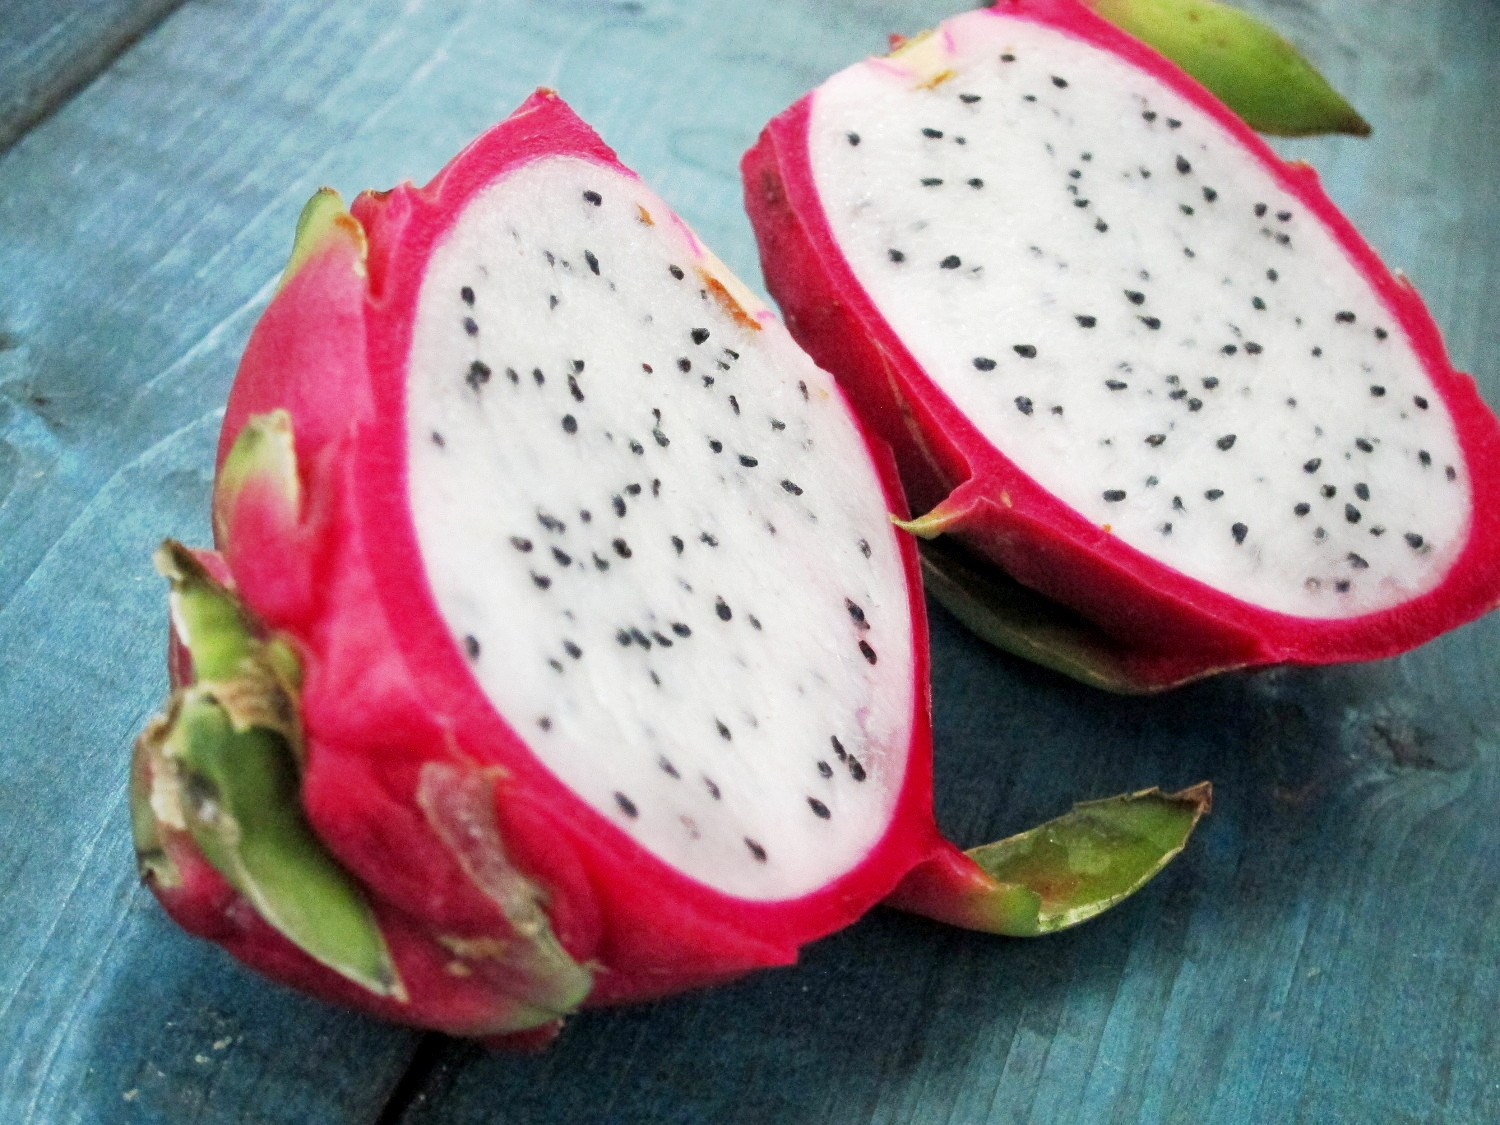 Dragon fruits opened photos